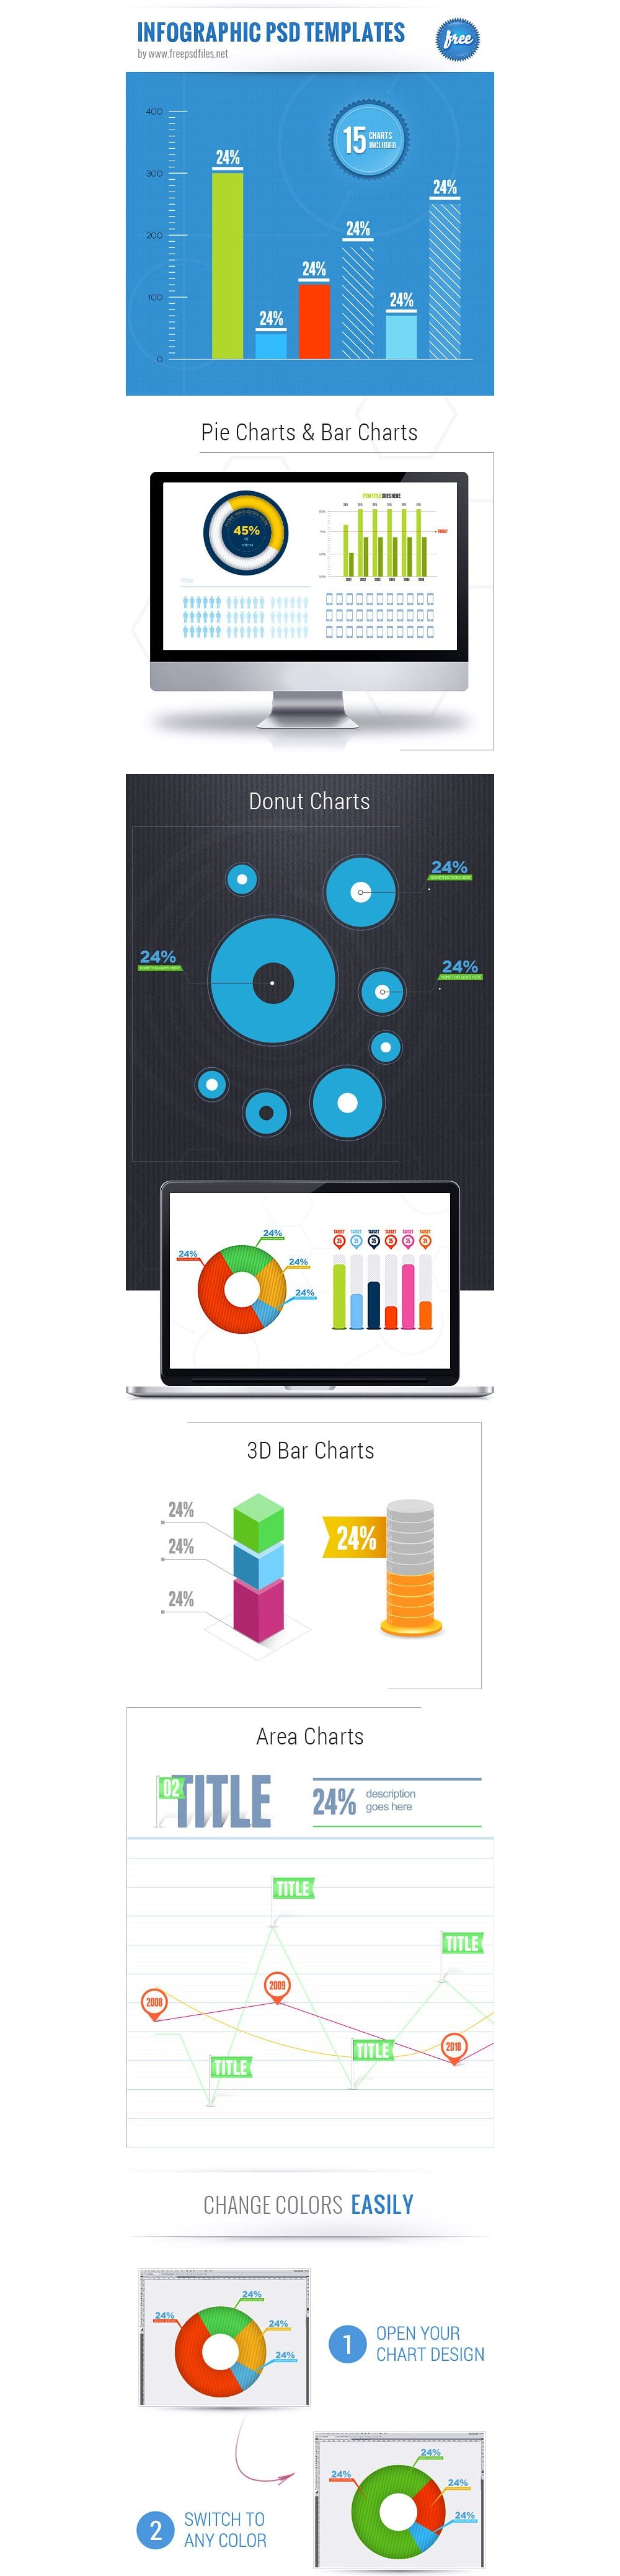 Free Infographic Templates PSD